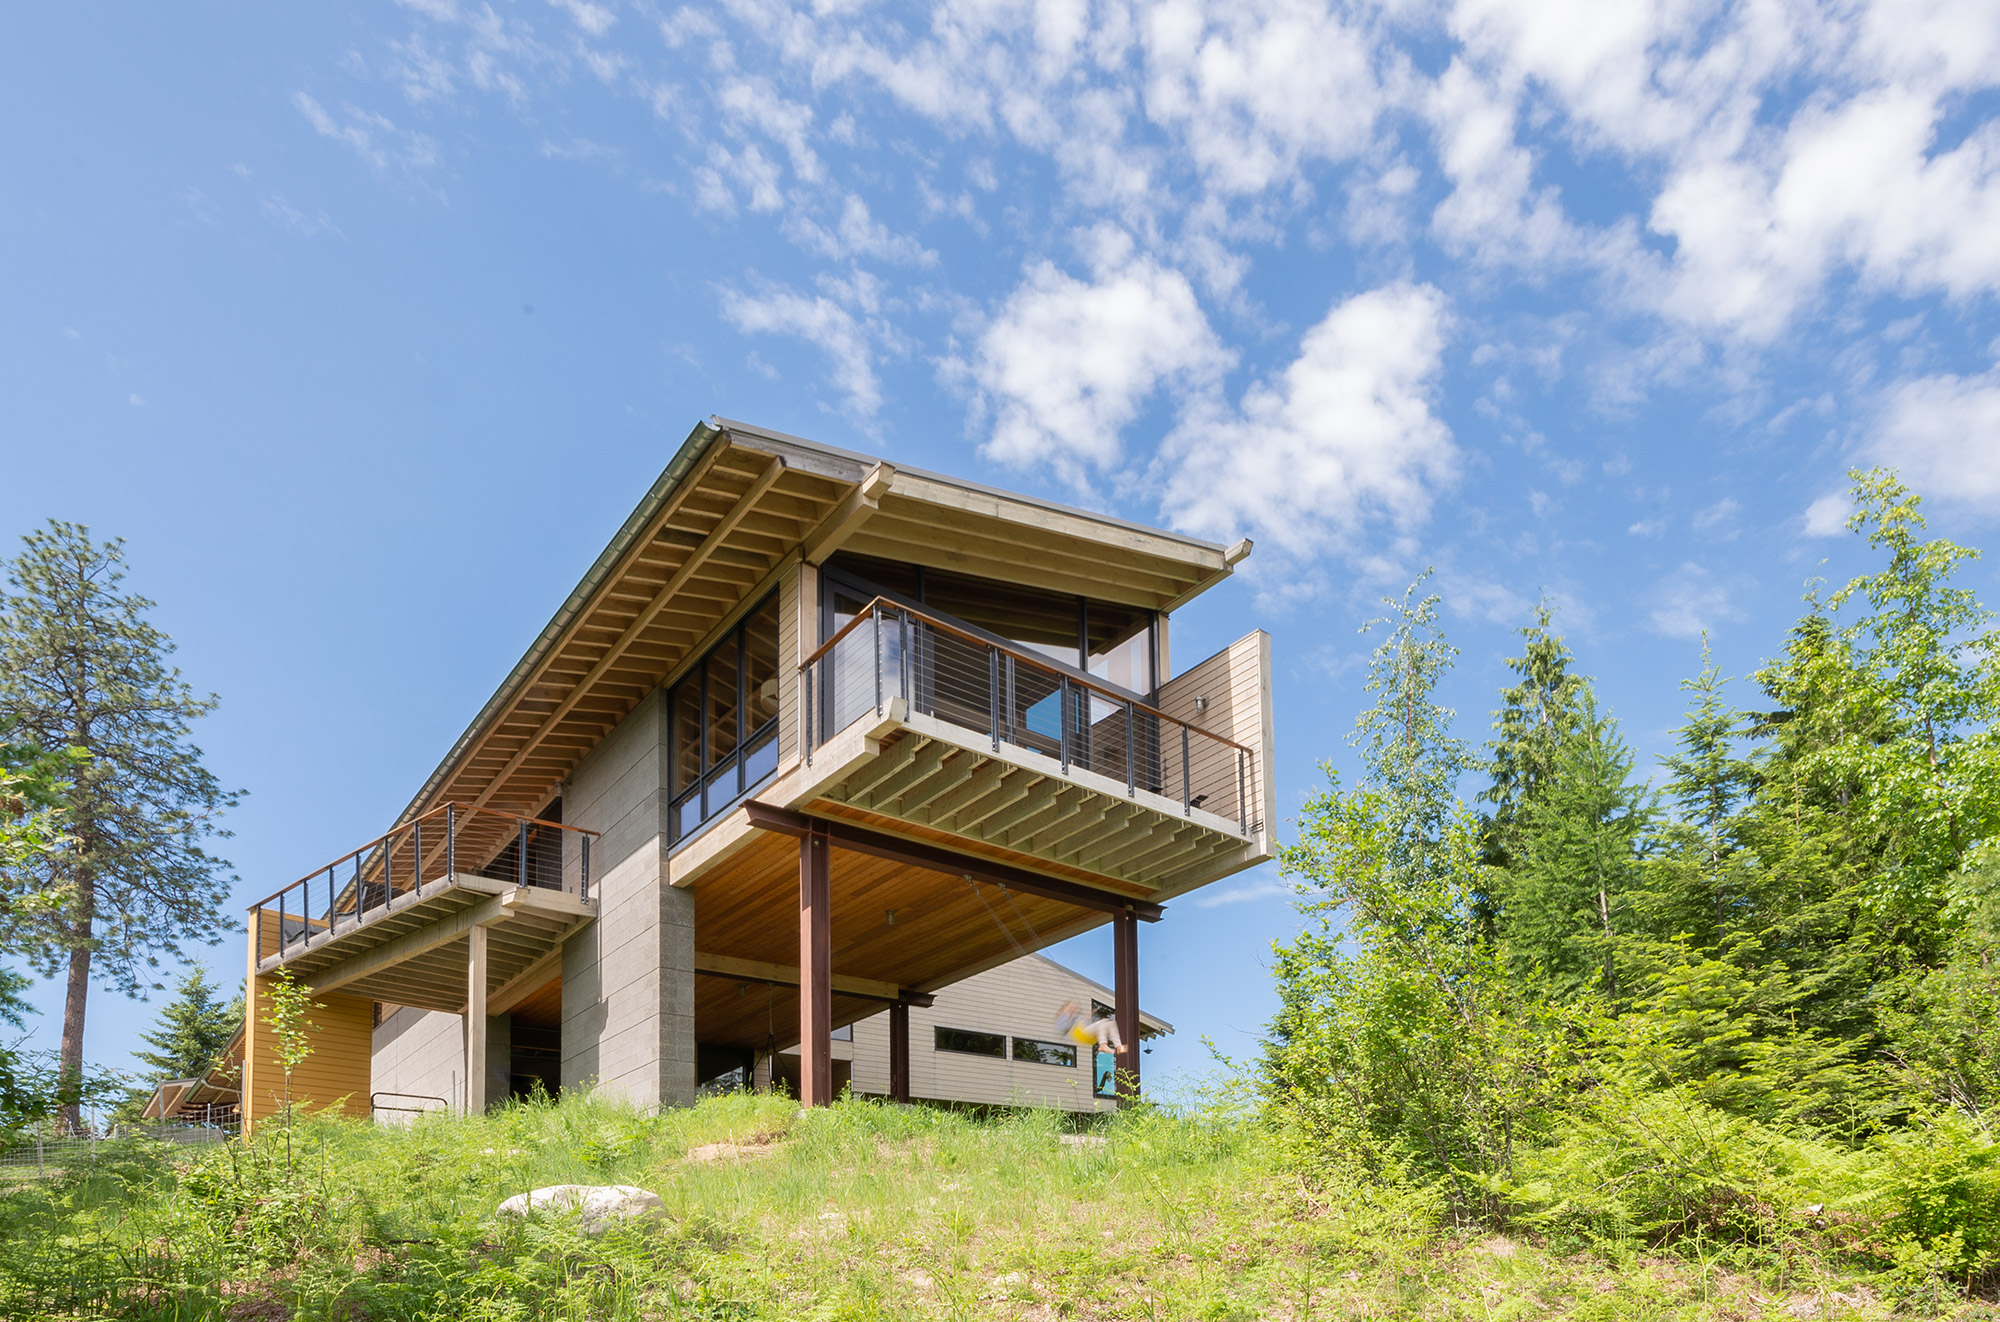 Larch Residence by Katie Egland Cox & Gordon Walker